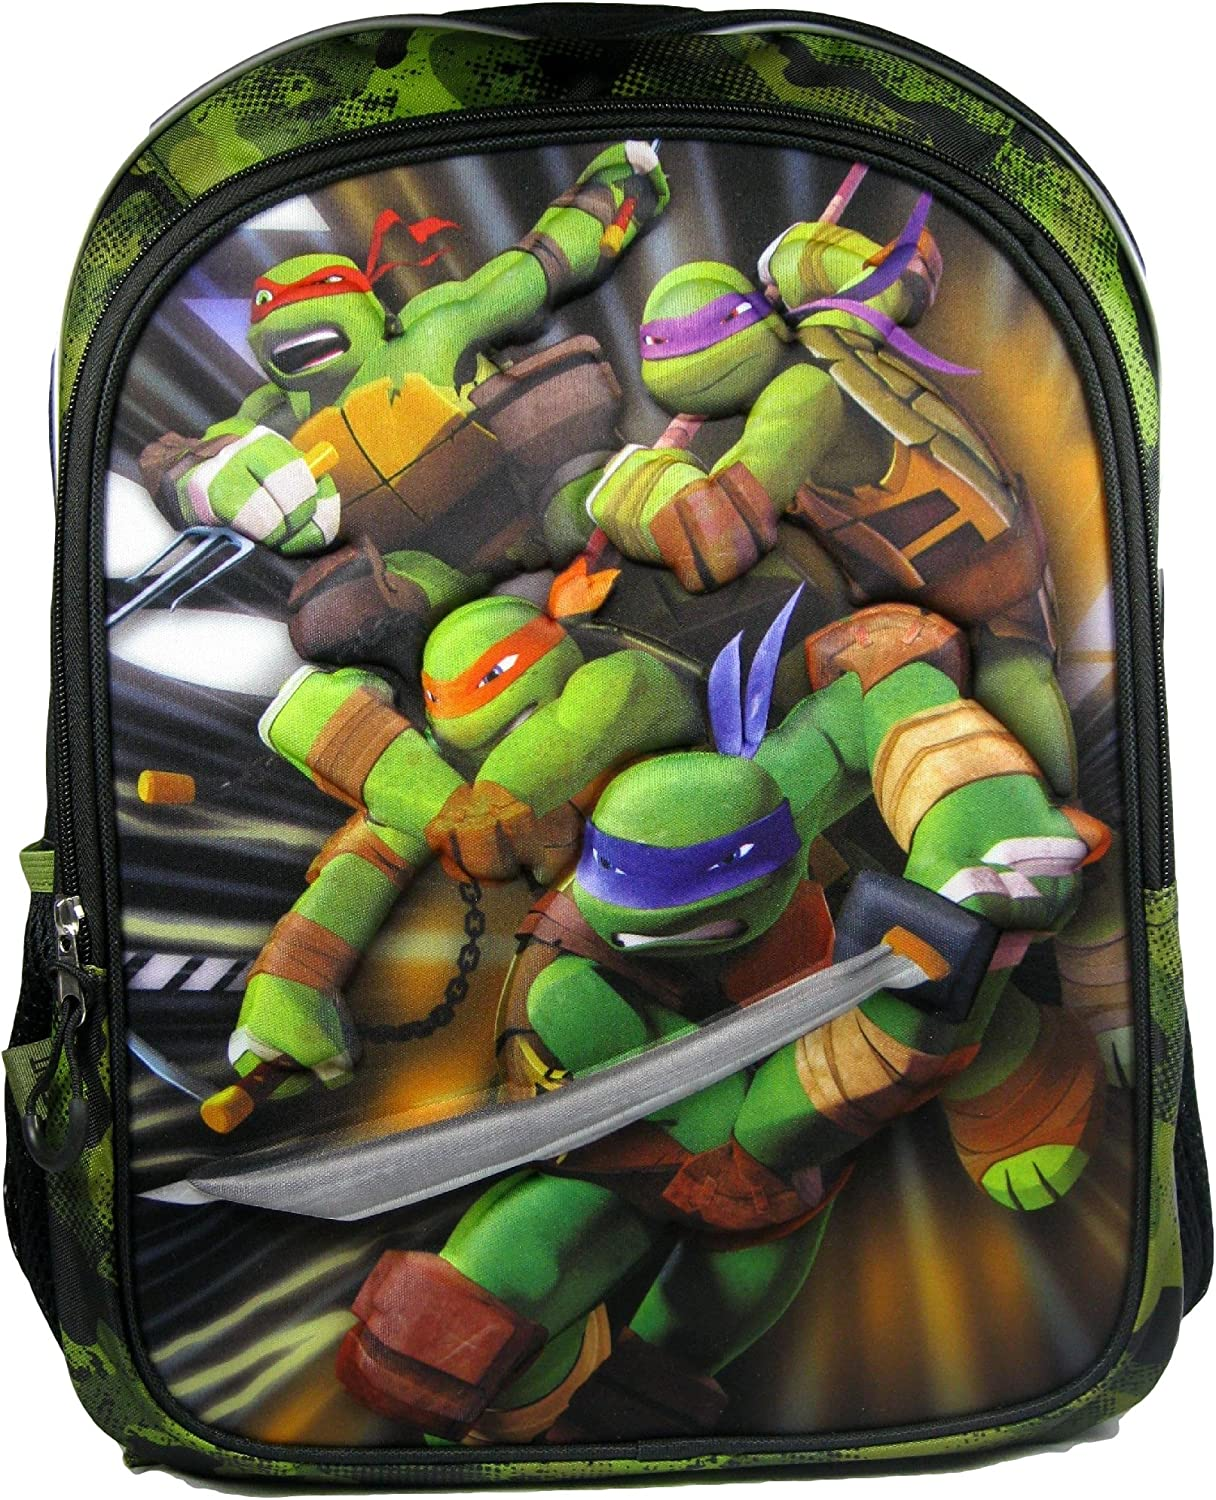 Accessory Innovations Teenage Mutant Ninja Turtles 3D Front Backpack School Travel Action Back Pack